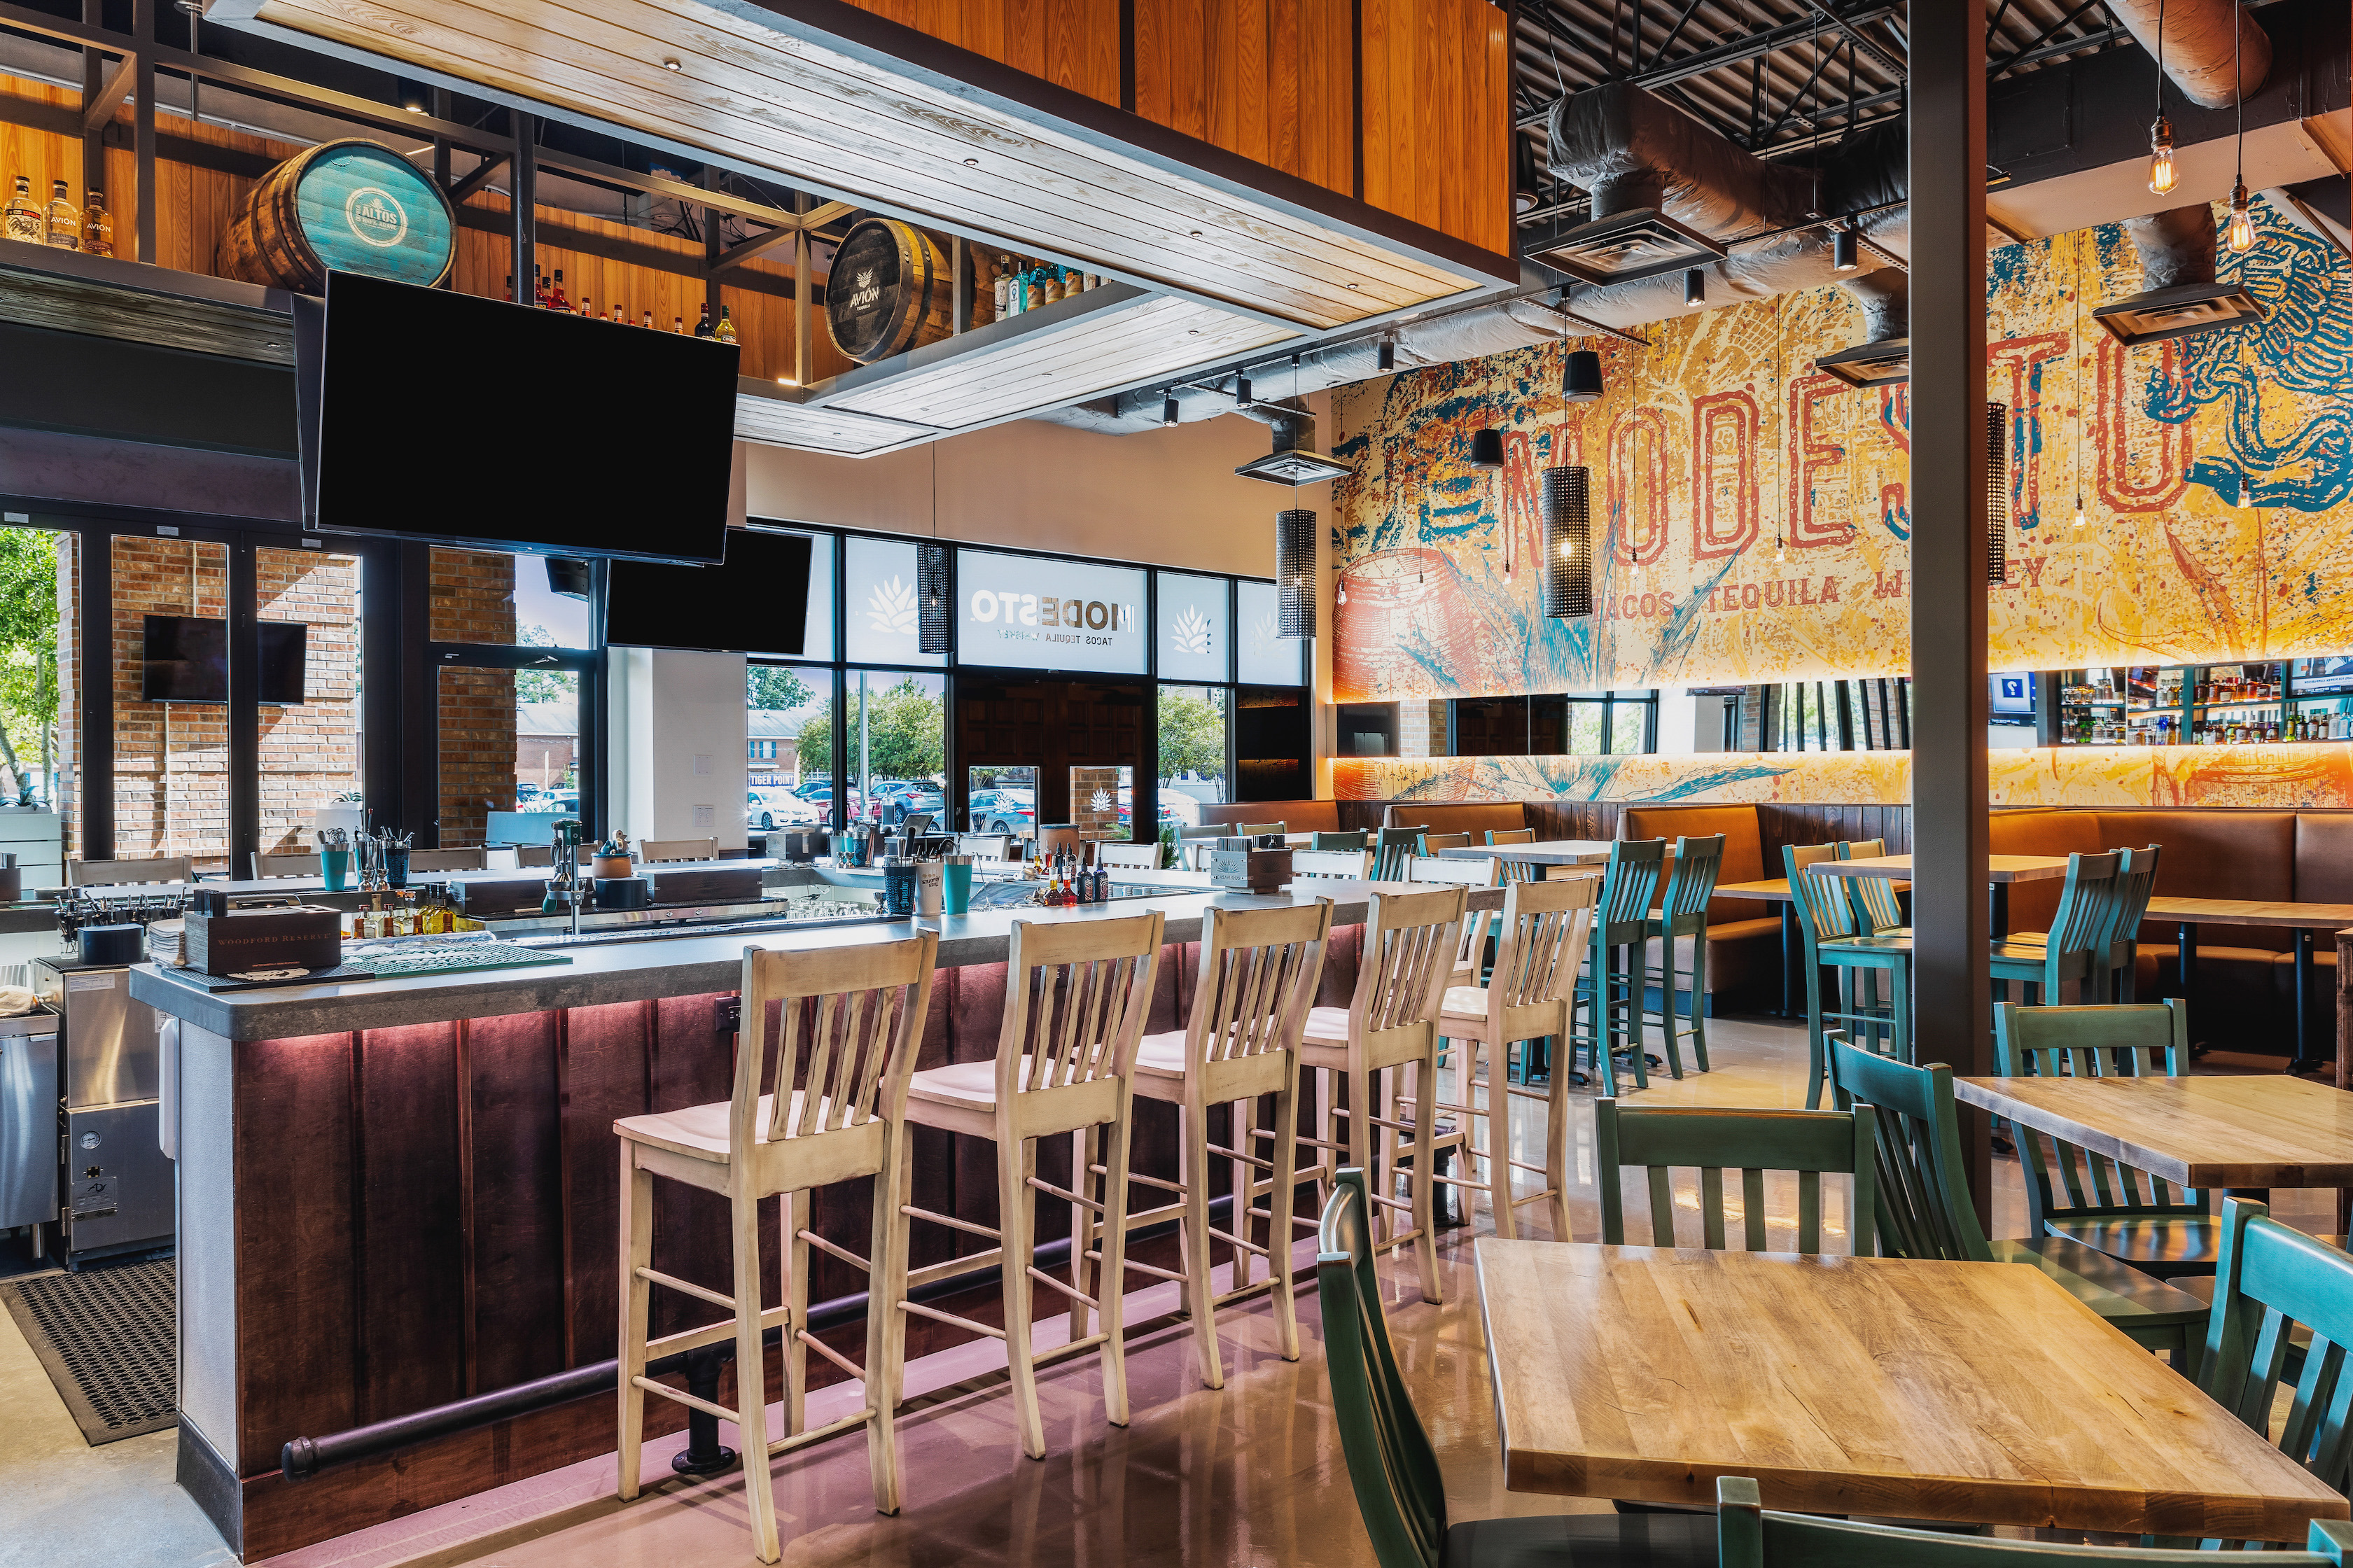 First Look Modesto Taco Tequila Whiskey Opens In Baton Rouge This Week Bringing Fresh Authentic Mexican